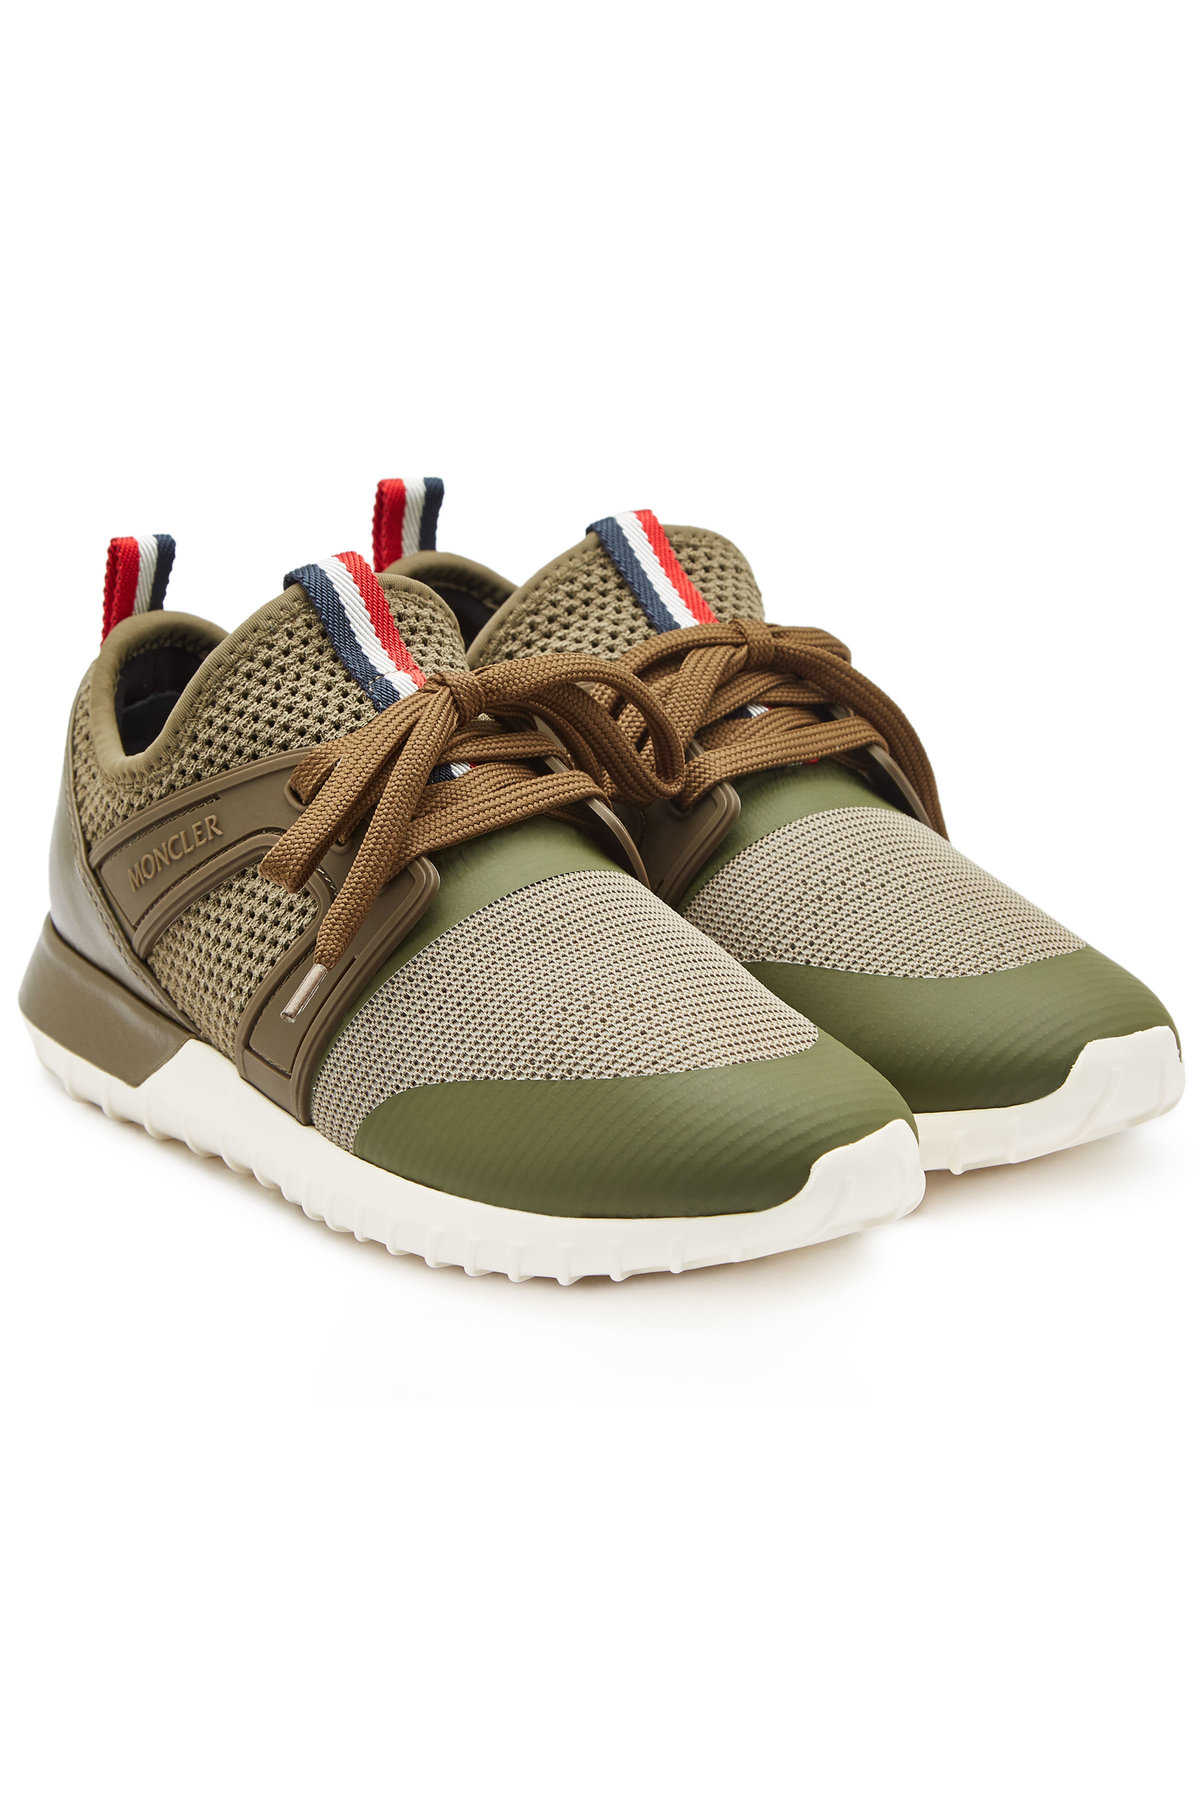 Moncler Meline Sneakers with Leather